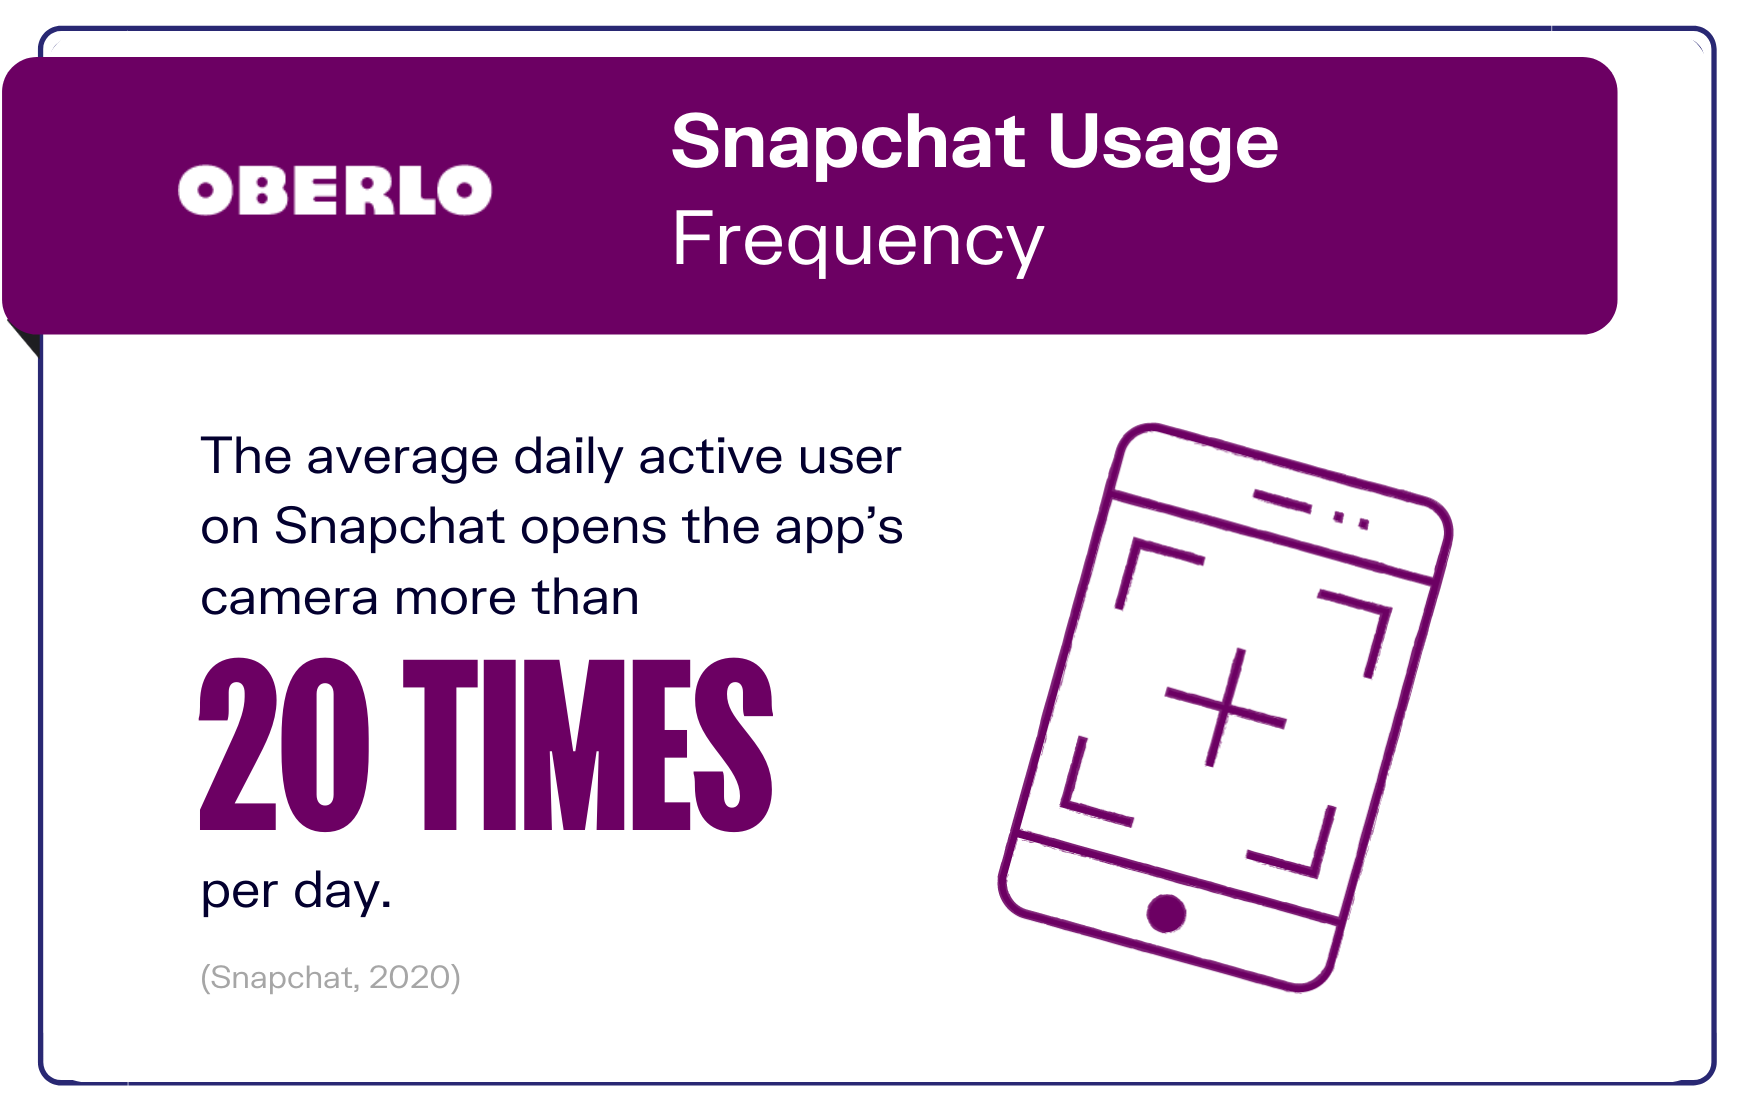 Snapchat Usage Frequency graphic